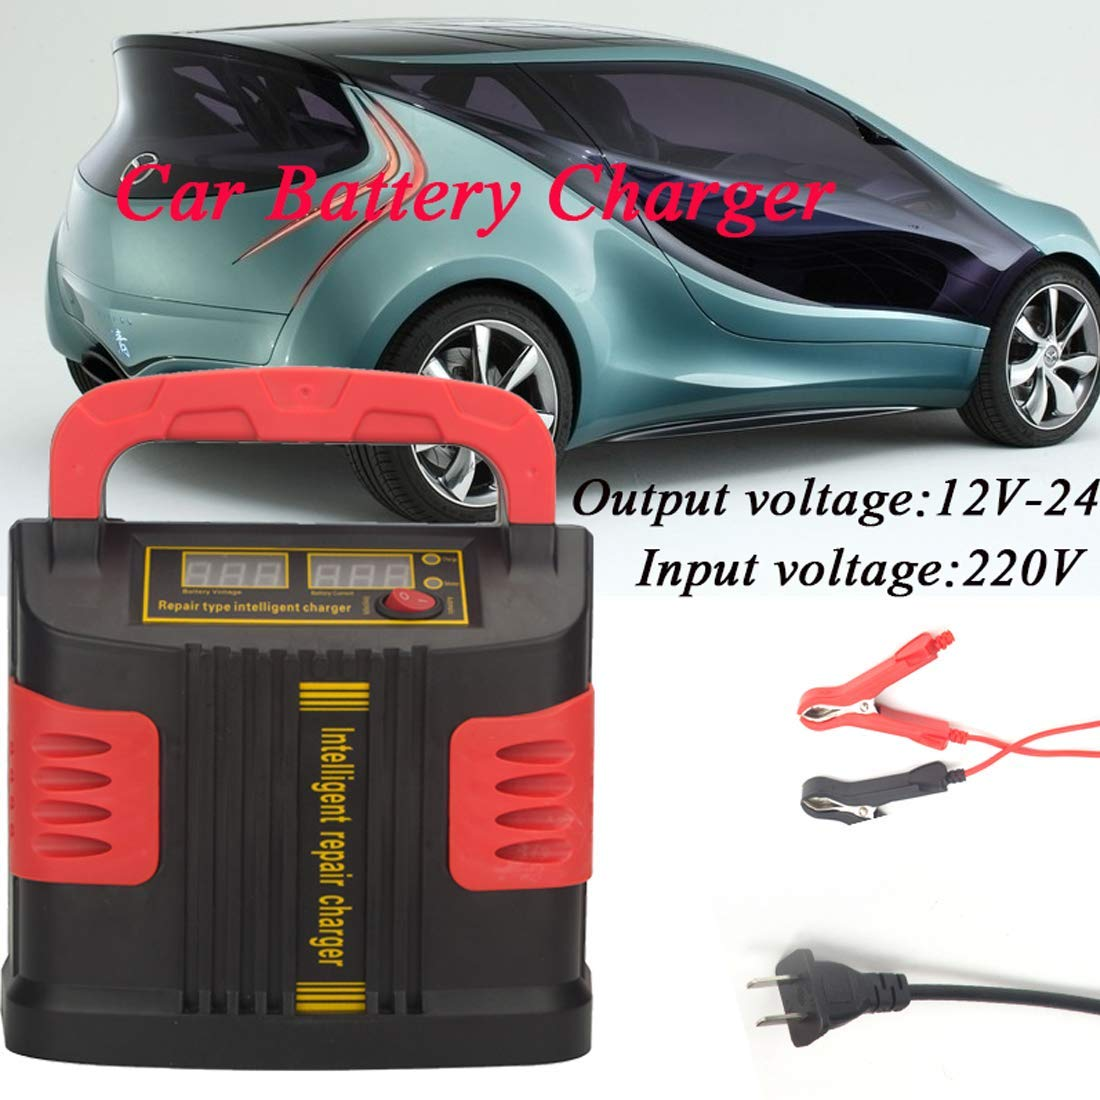 Auto Car Battery Charger 350W 12-24V Portable Electric Car Emergency Charger Booster Intelligent Pulse Repair